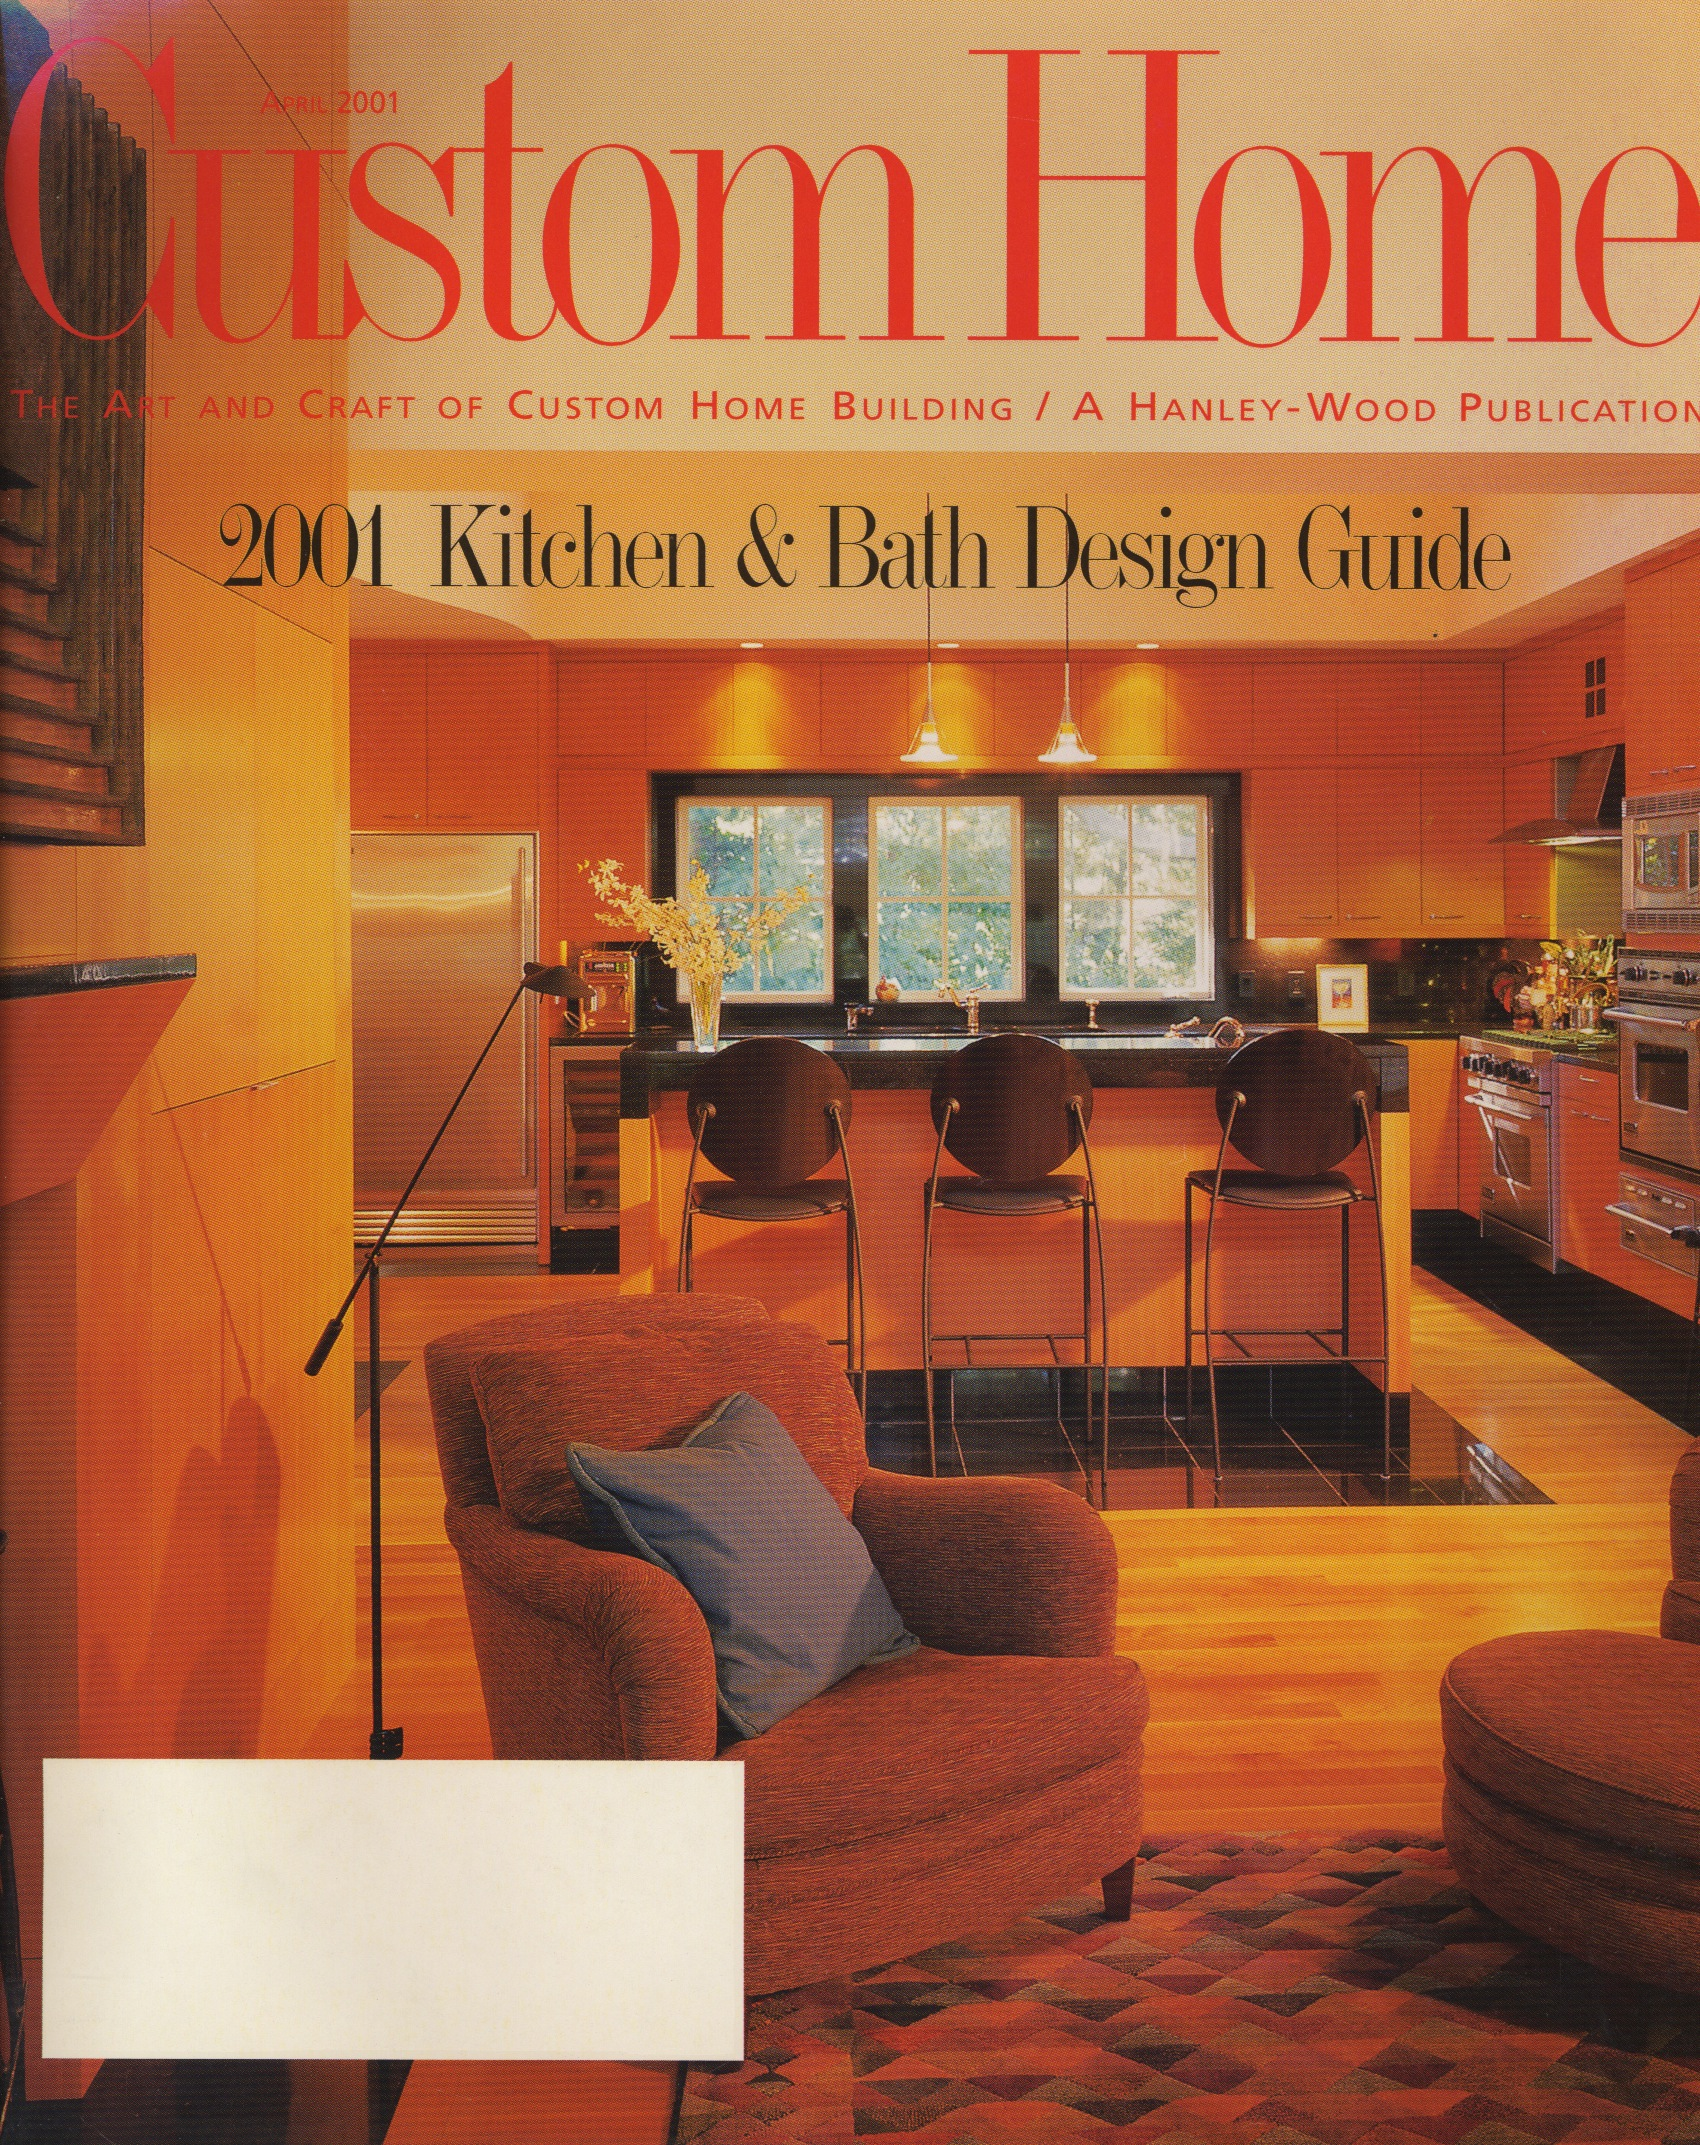 Custom Home - Crawfords - Cover.jpg